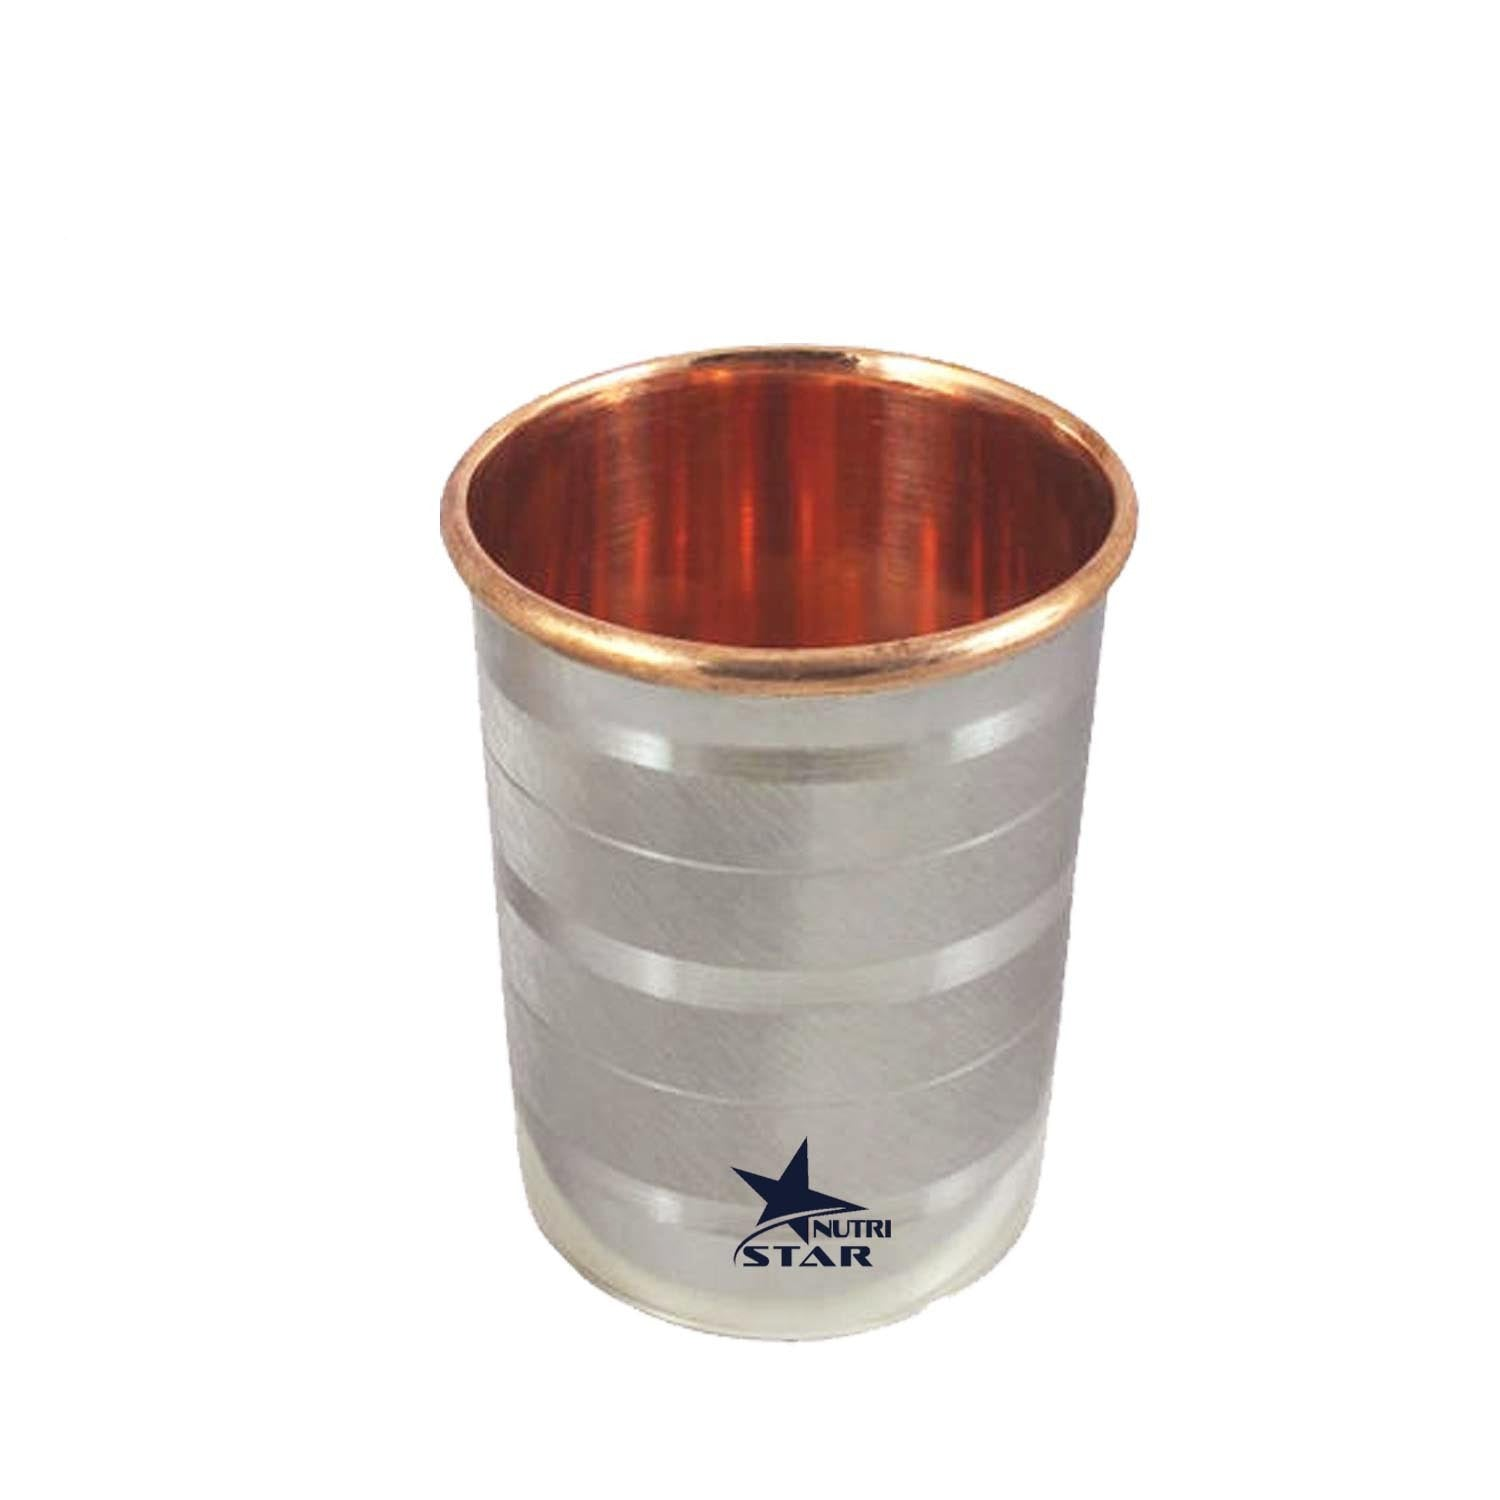 Pure Copper Glass with stainless Steel body | Stainless Steel Copper Glass | Capacity = 300 ml